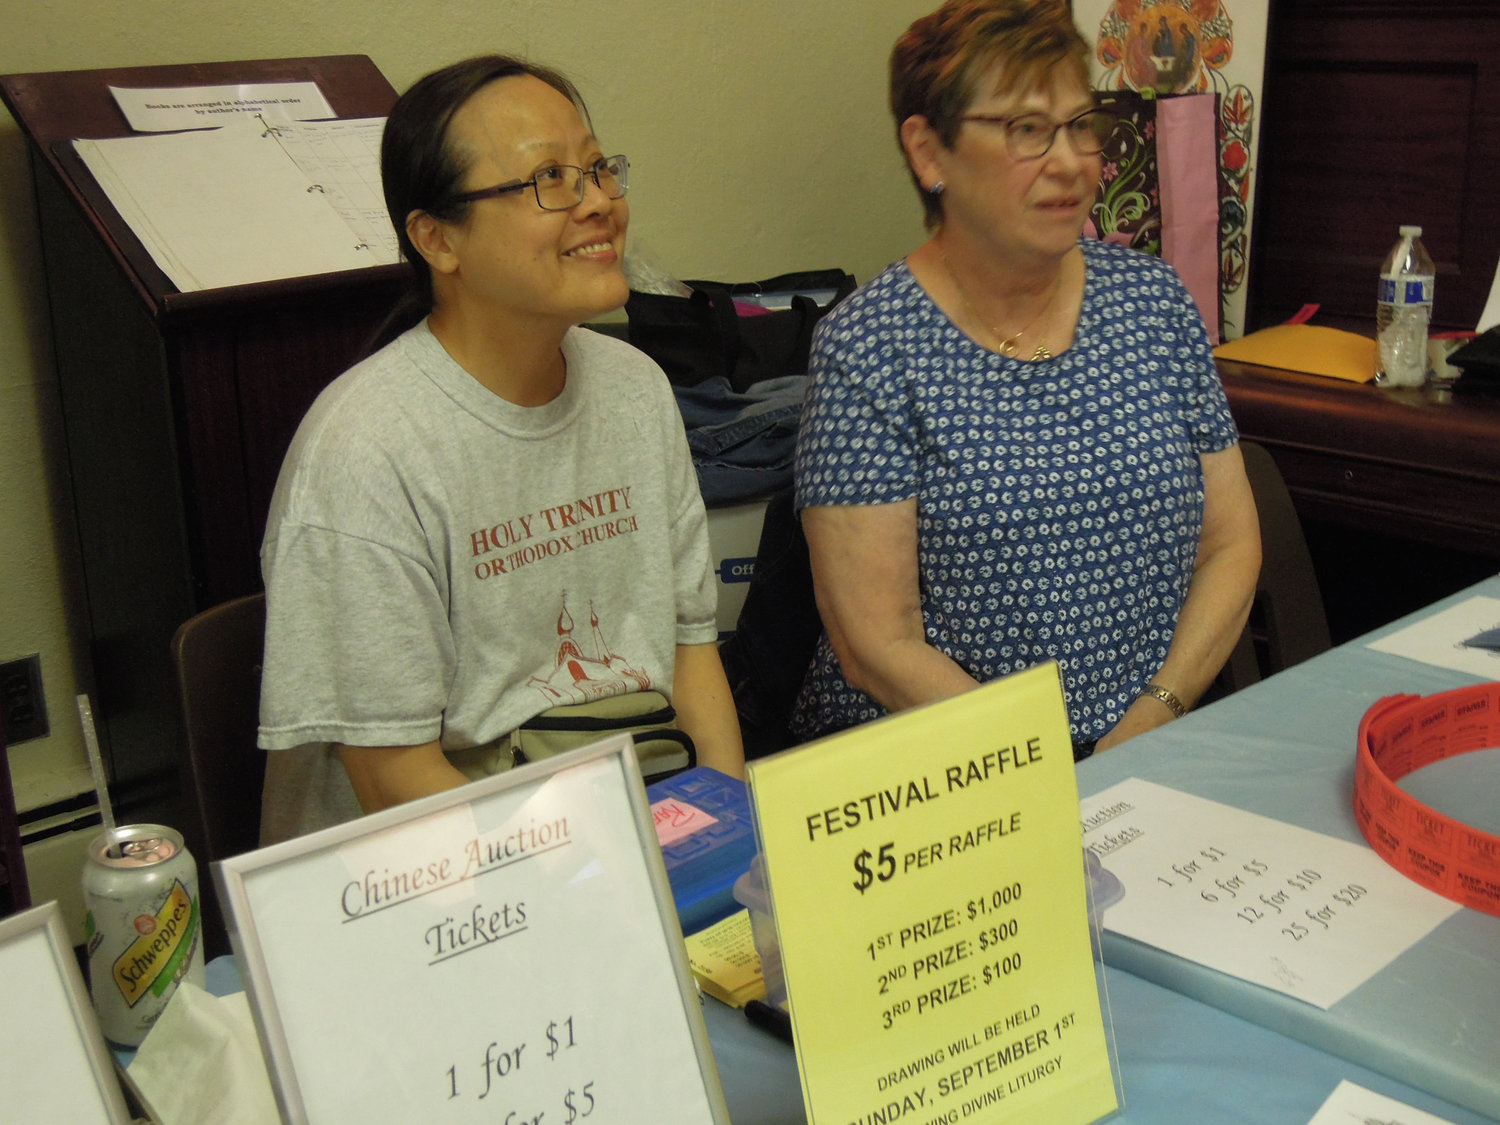 Nancy Geng Vassilakis, left, and Maryann Crowley surveyed the items for sale in  an array of items to be auctioned in various combinations.